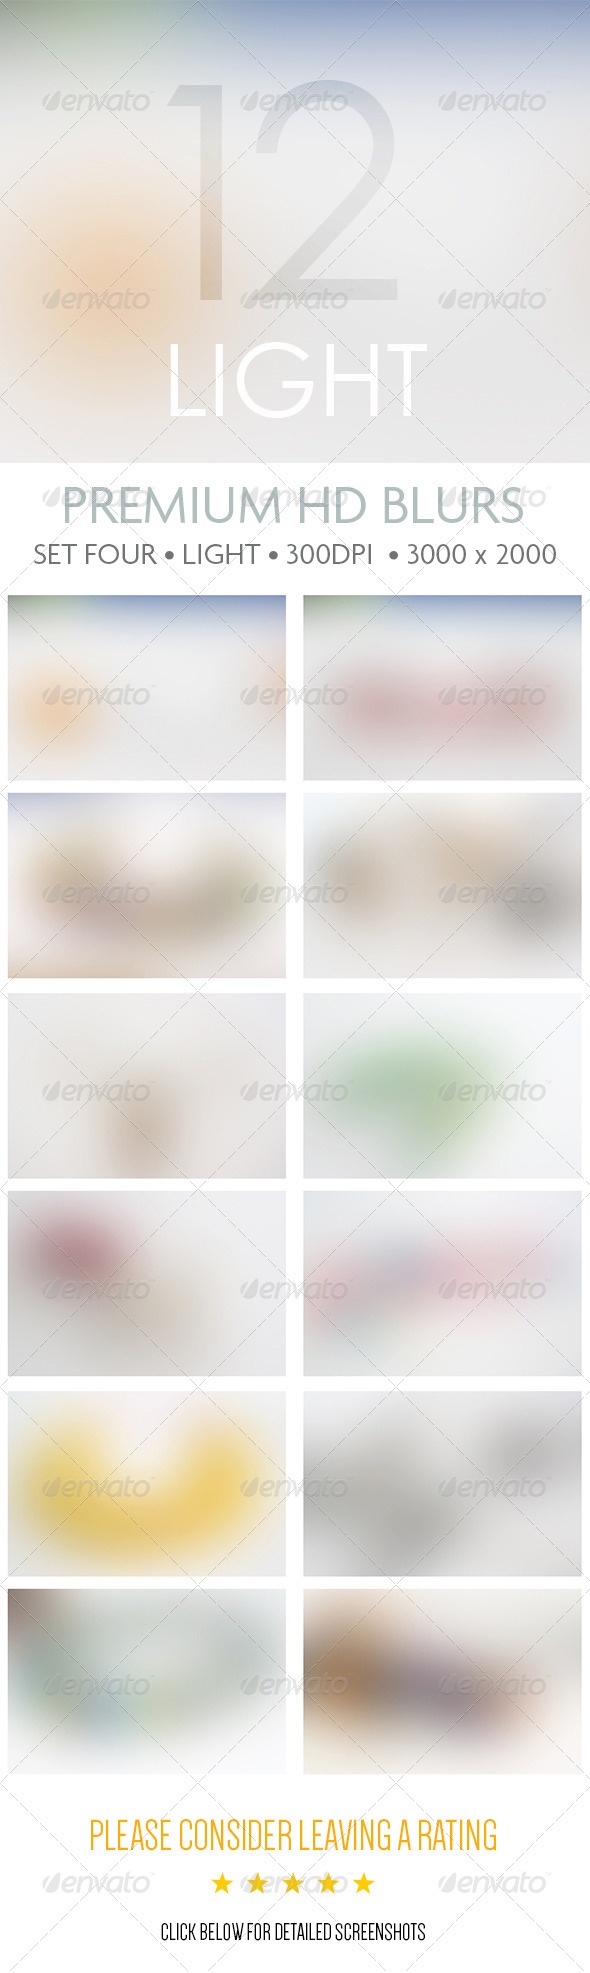 Premium HD Blurs - Set Four - Abstract Backgrounds